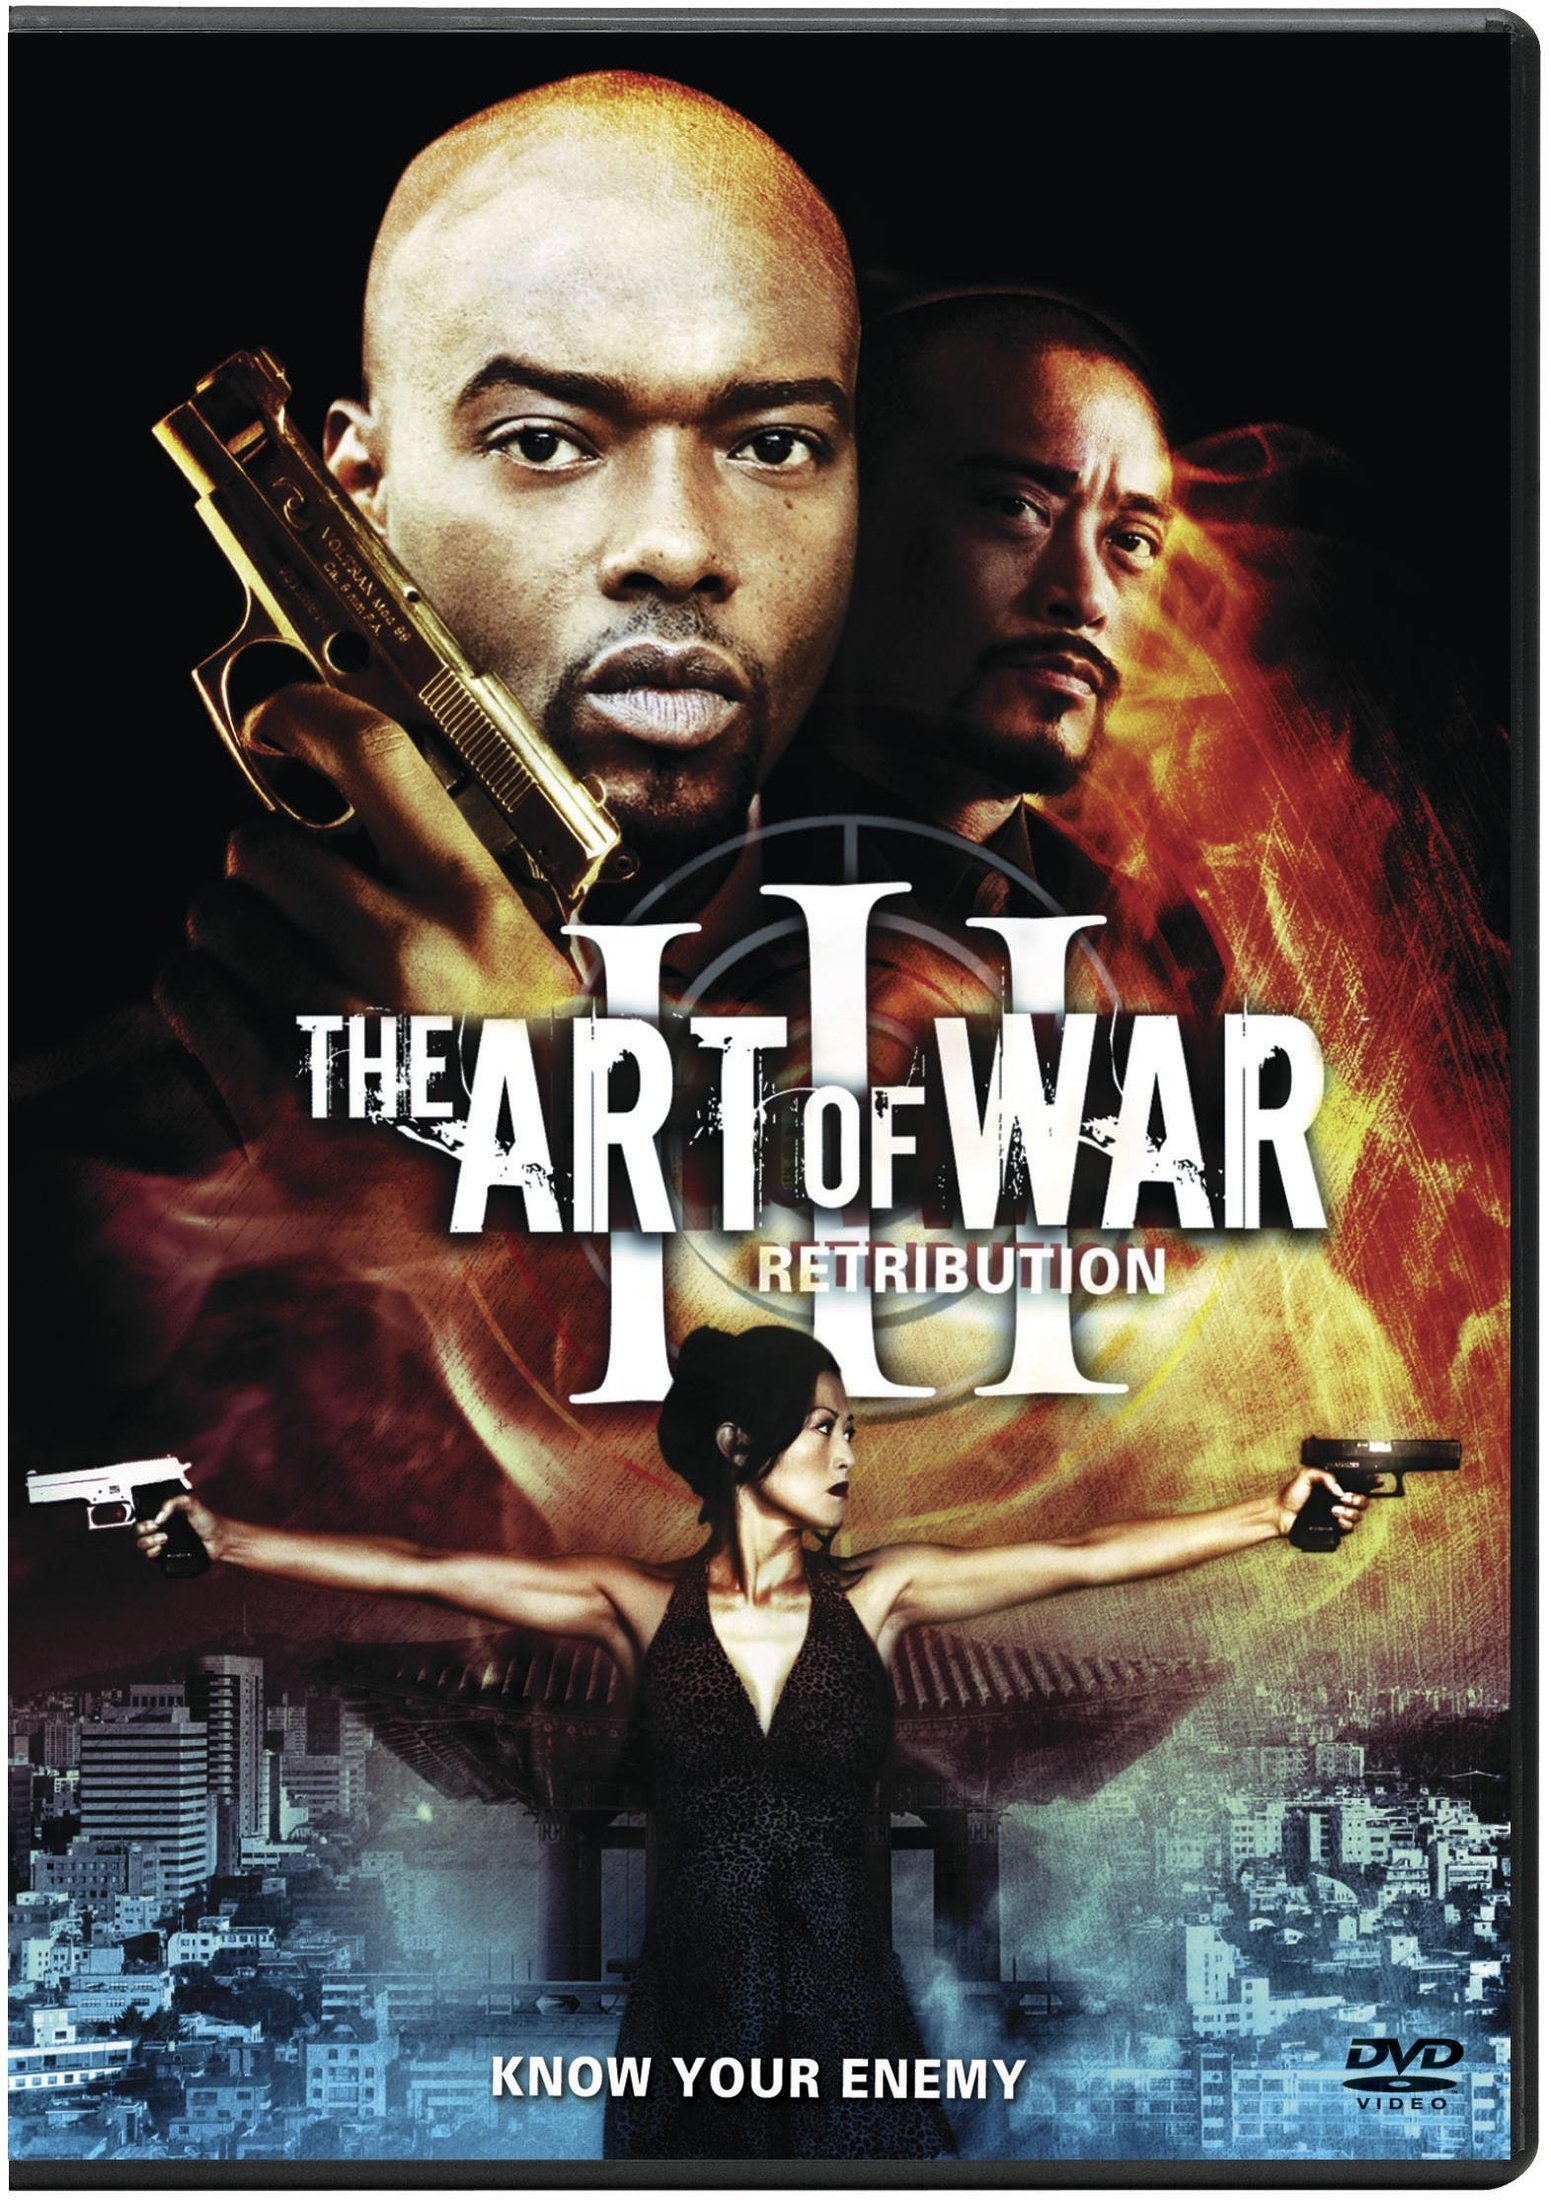 DVD : The Art Of War Iii: Retribution (Subtitled, Dubbed, Dolby, AC-3, Widescreen)